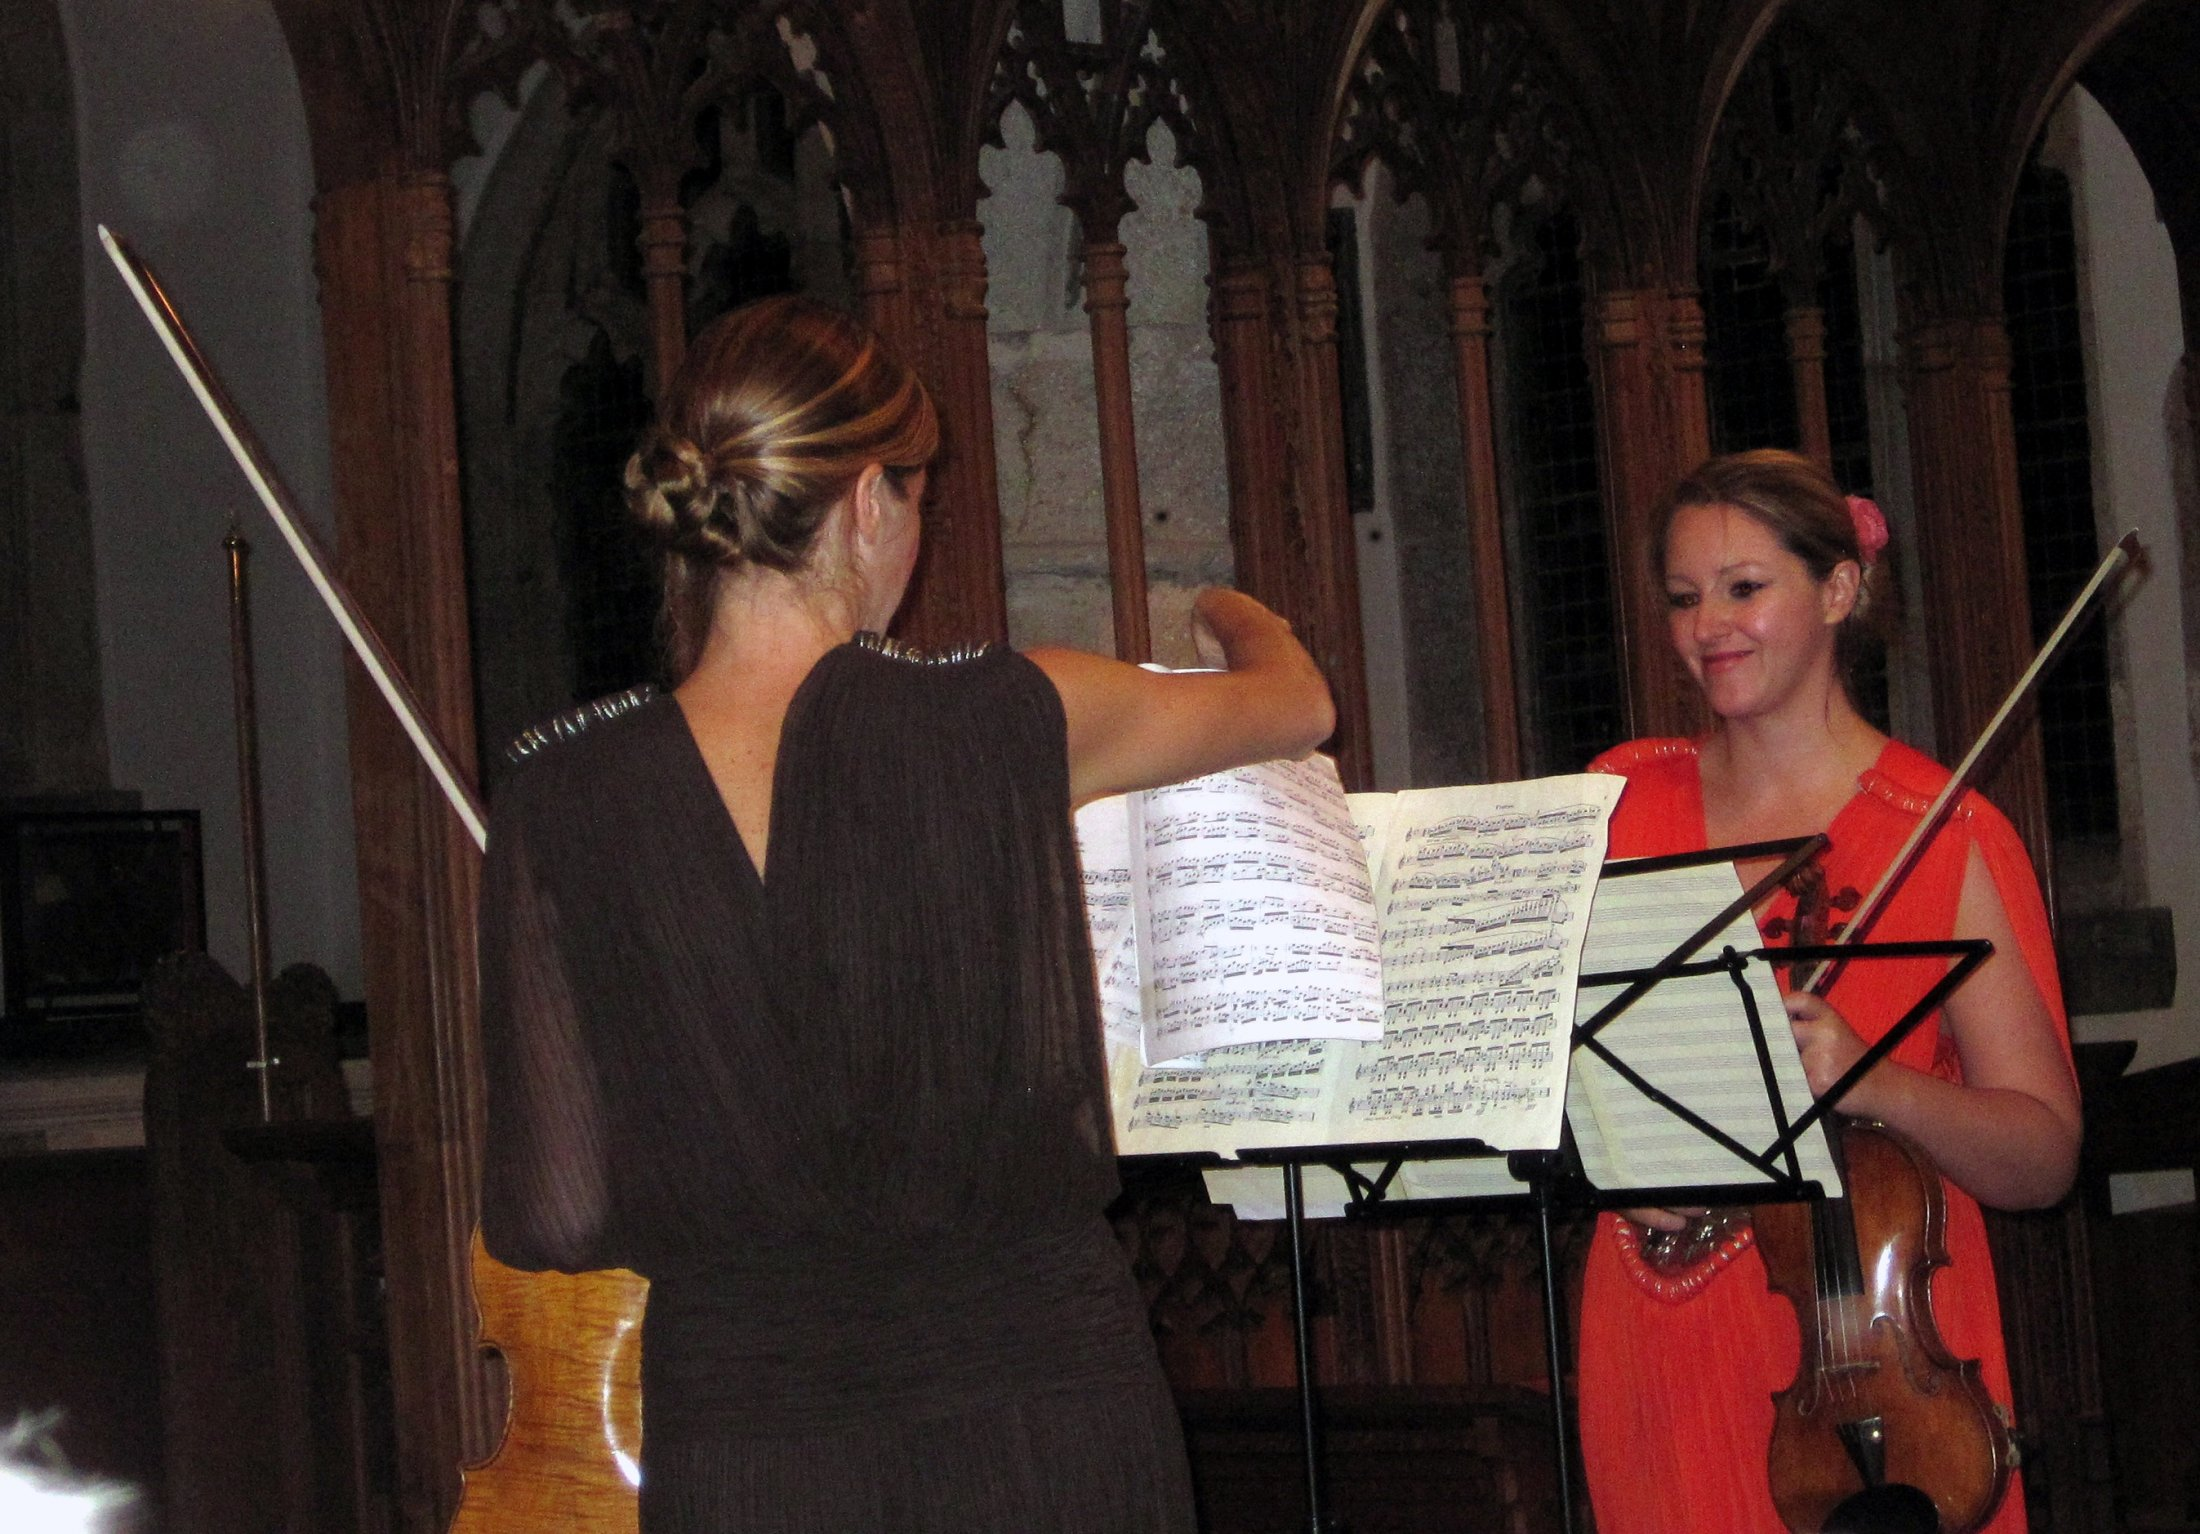 Retorica, 2 violinists who played a concert in the church